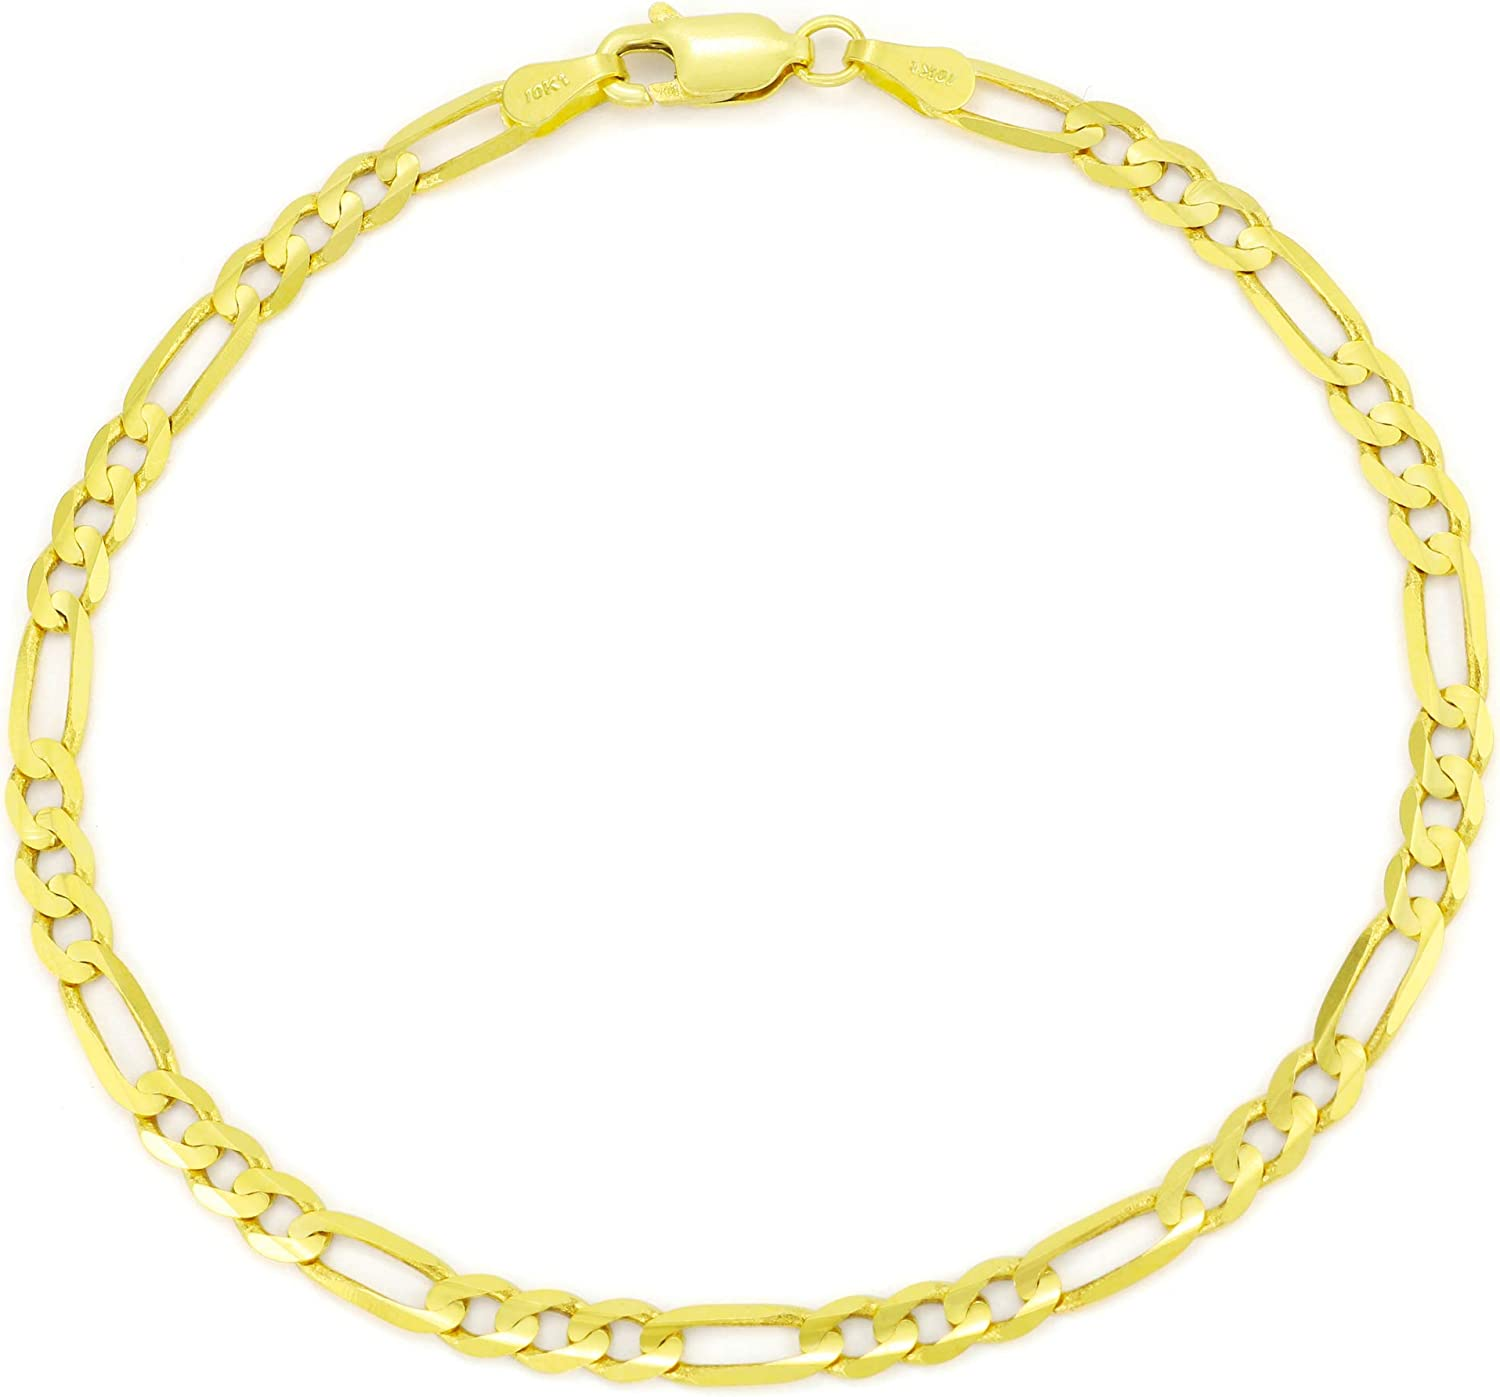 Nuragold Weekly update 10k Yellow Gold latest 4.75mm Solid Chain Link Figaro Bracelet